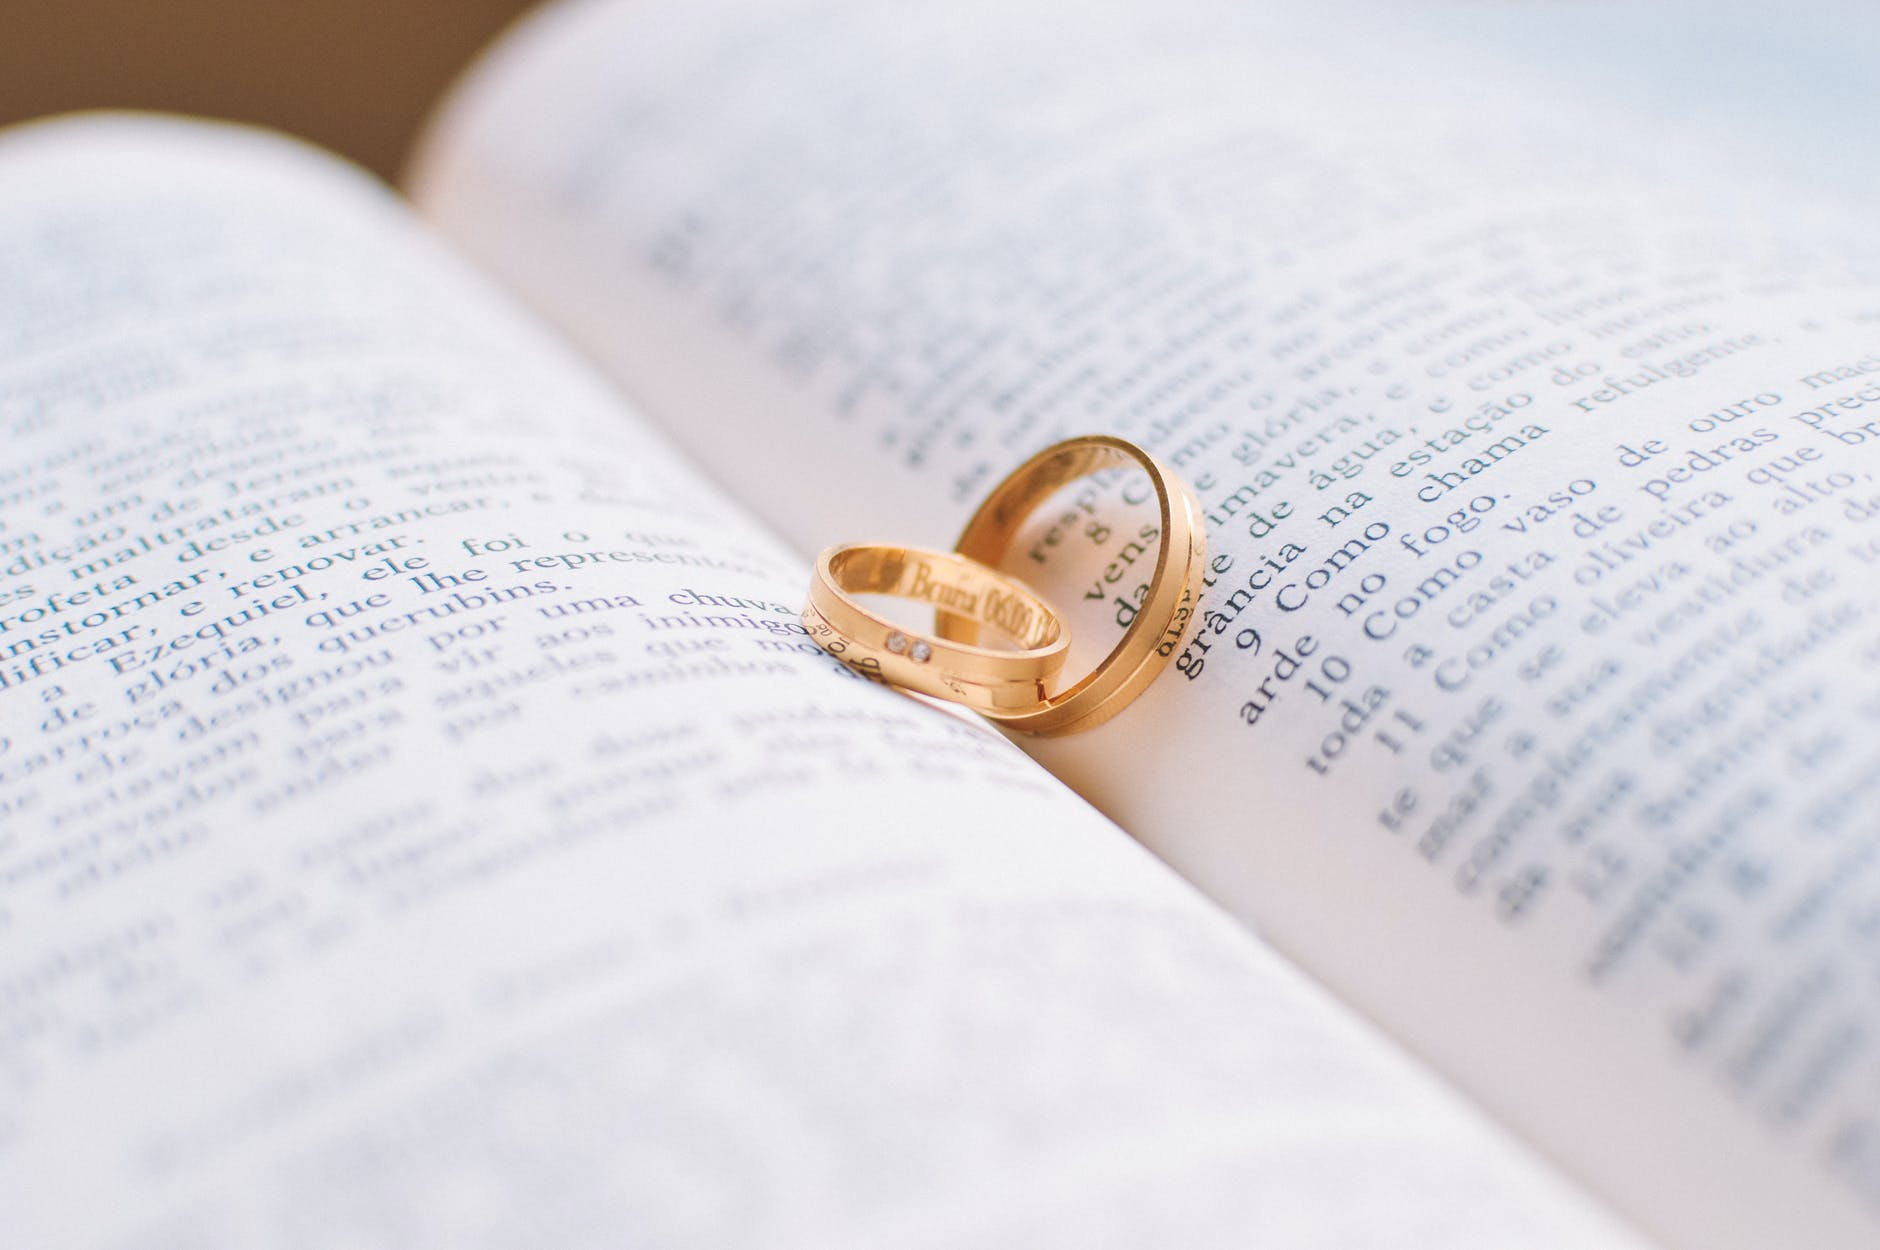 How To Make A Book For Wife